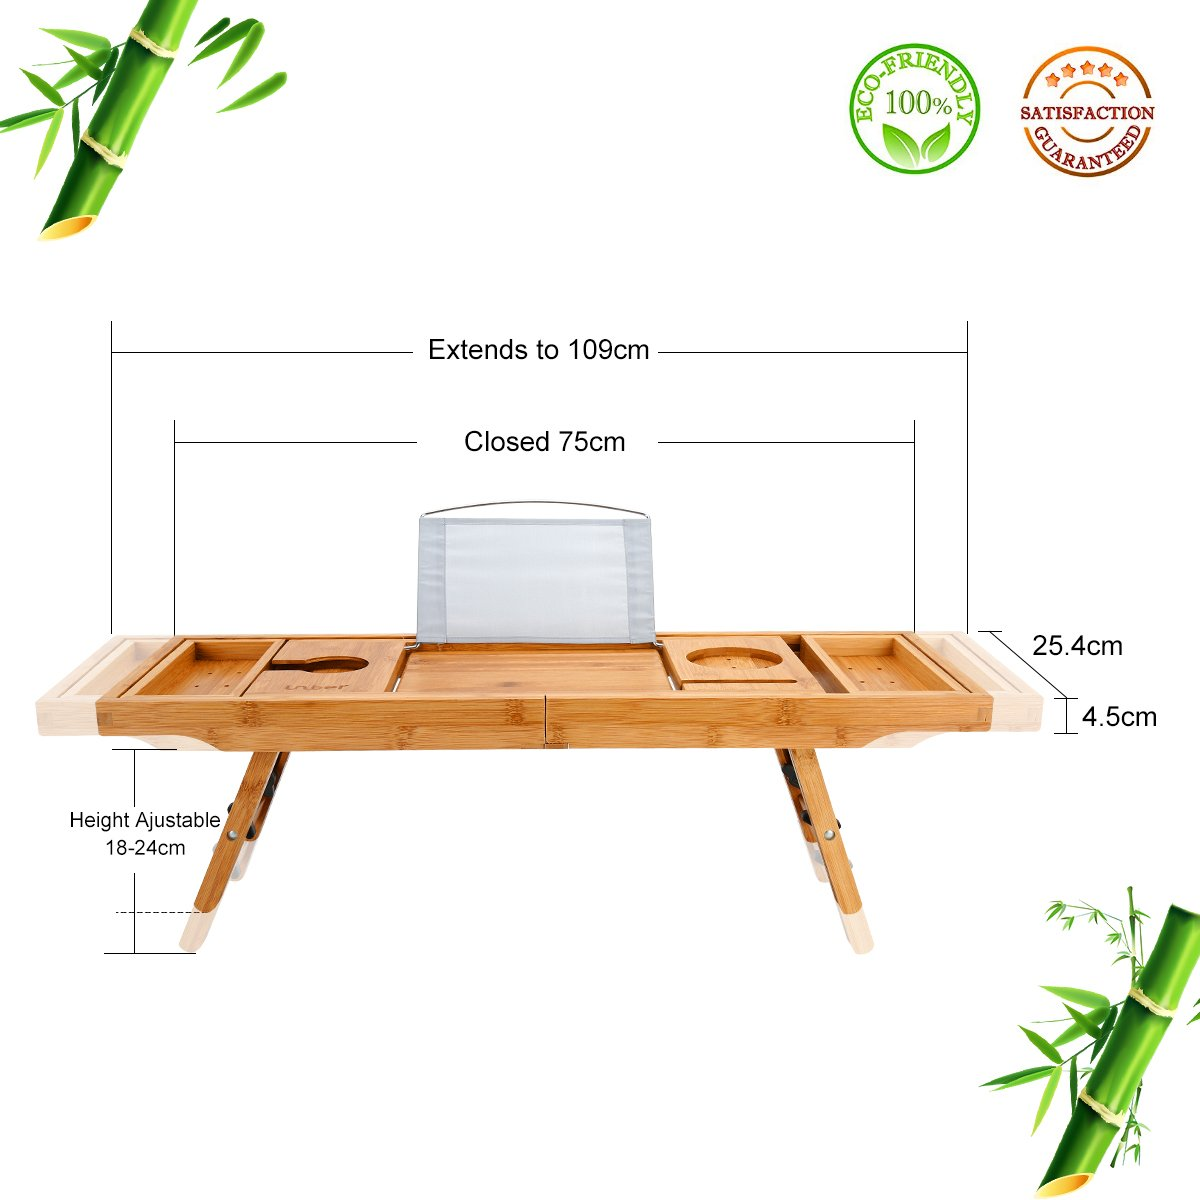 Wooden-Life Bathtub Caddy Tray& Laptop Desk with Foldable Legs, 2 in 1 Wisdom Design - Luxurious Bathtub Caddy with Extending Sides, Tablet Holder, Reading Rack,Cellphone Tray and Wine Glass Holder by Wooden-Life (Image #5)